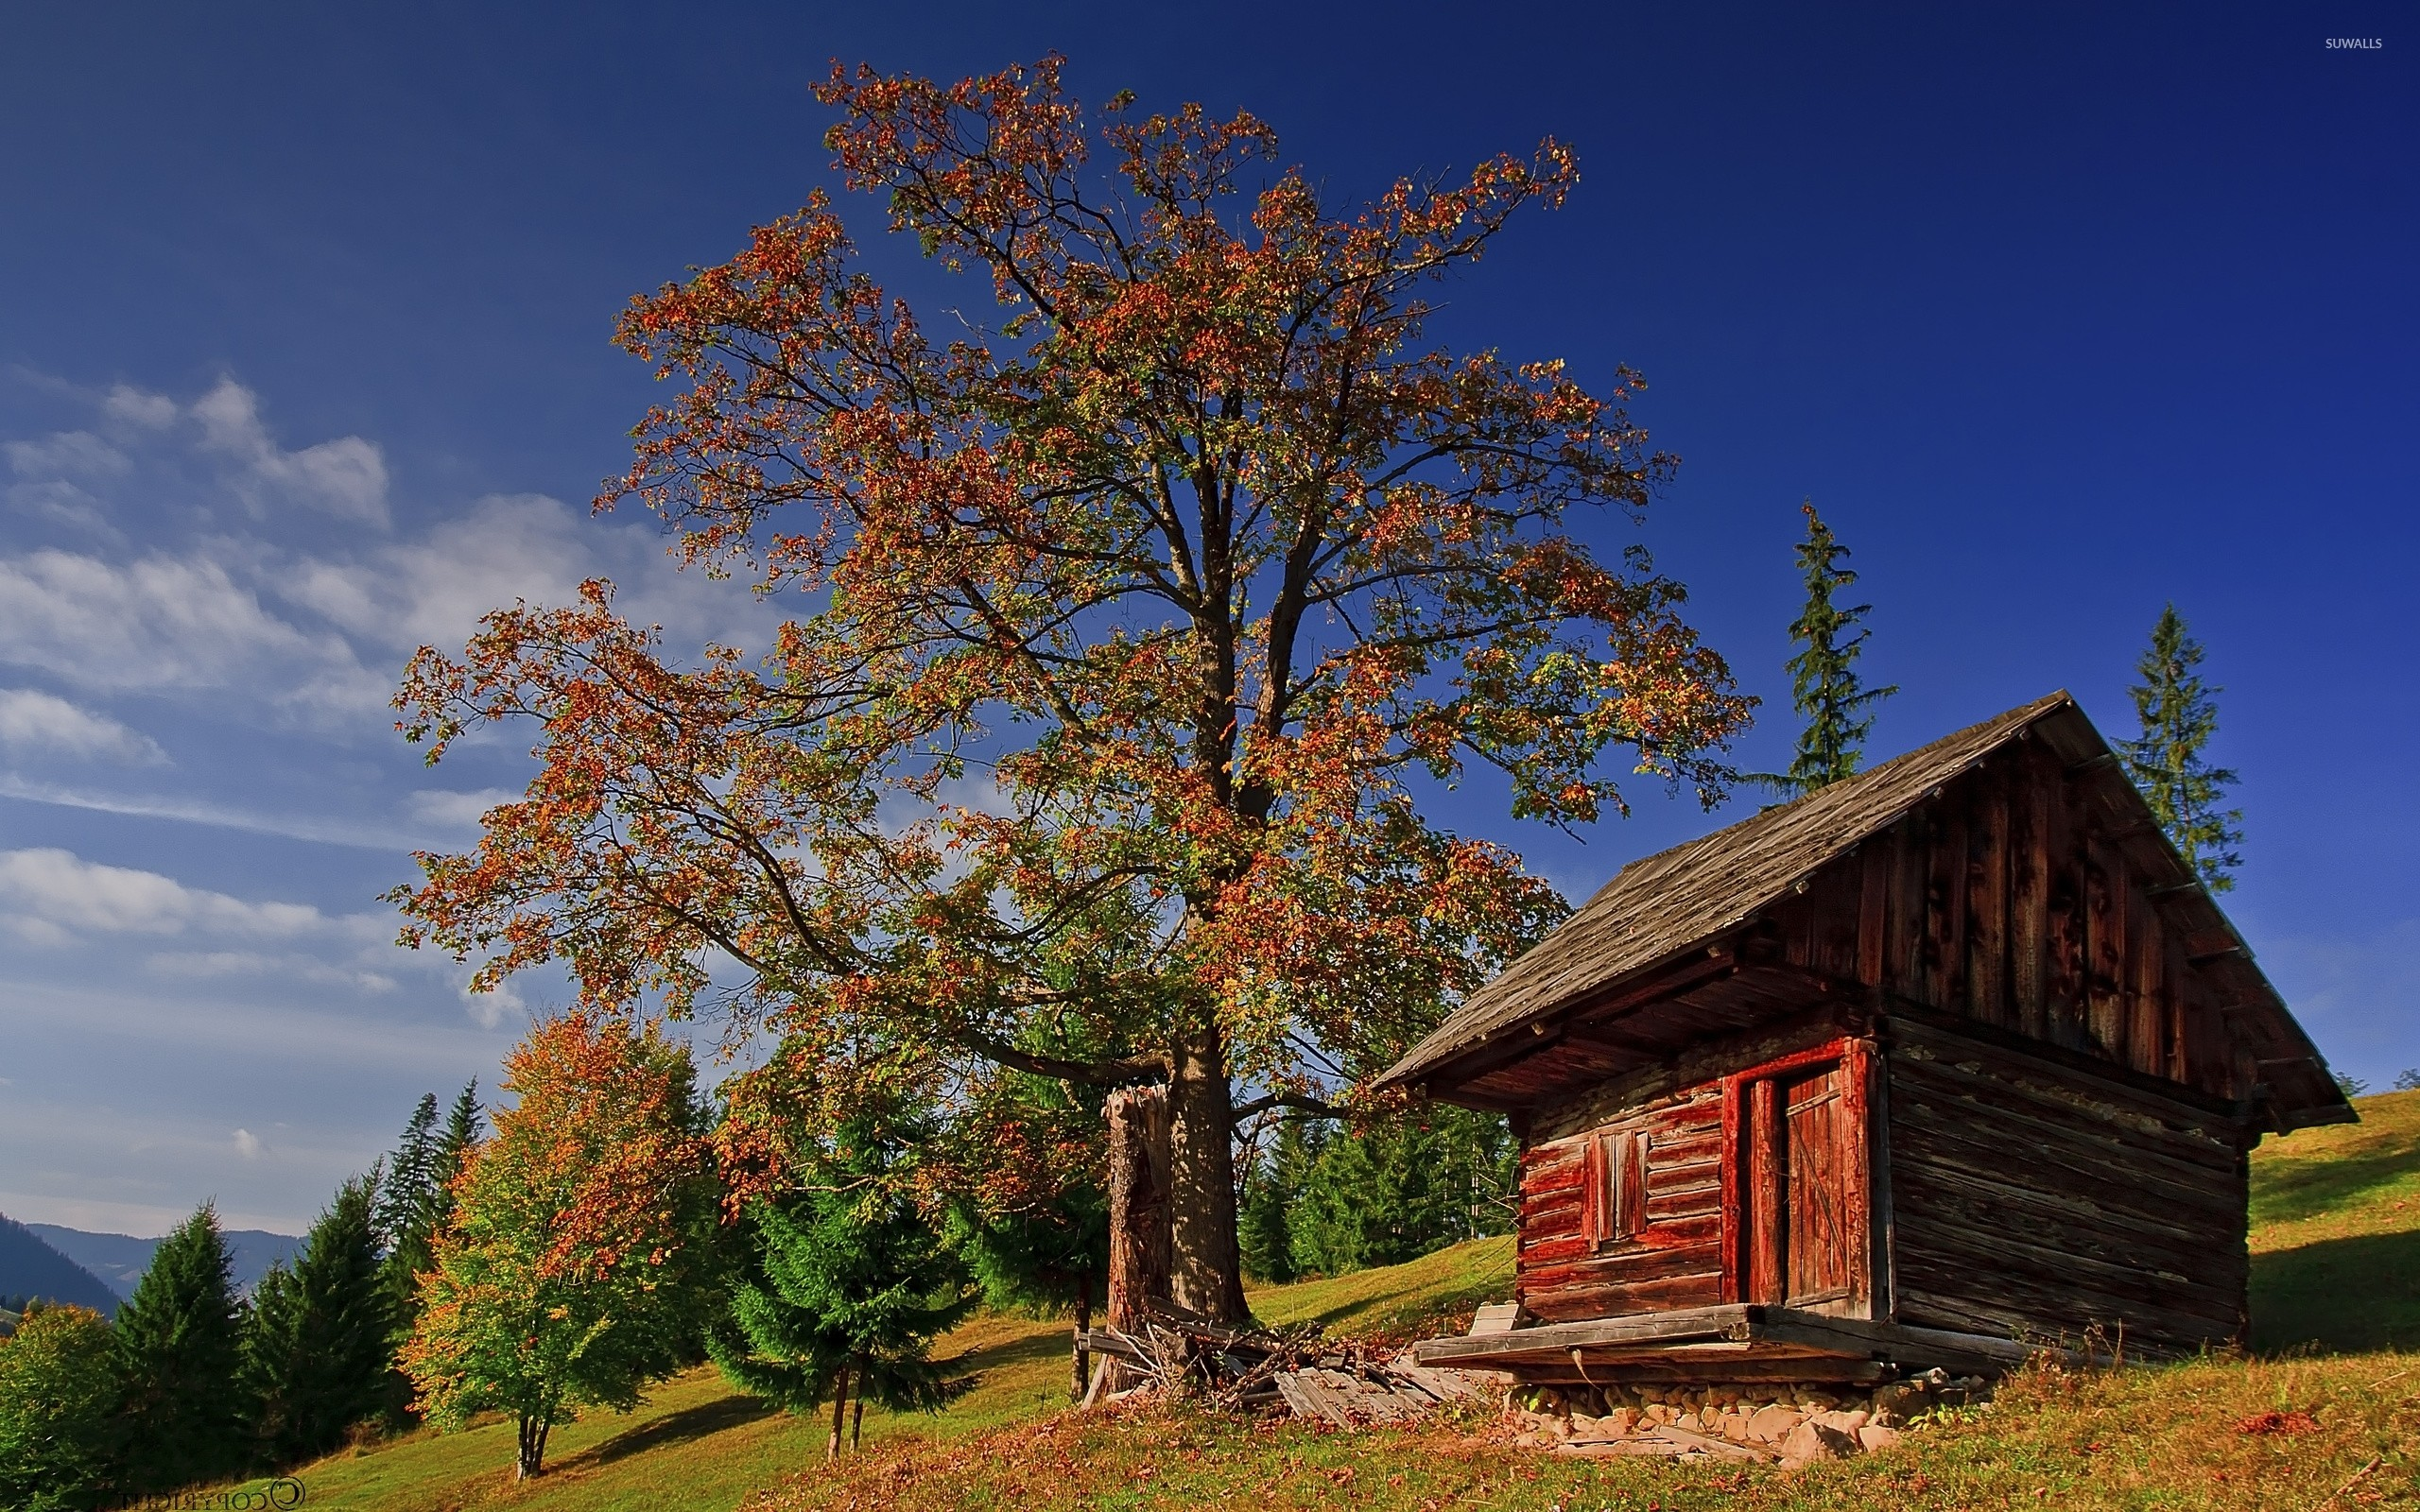 Old small wooden house under an autumn tree wallpaper